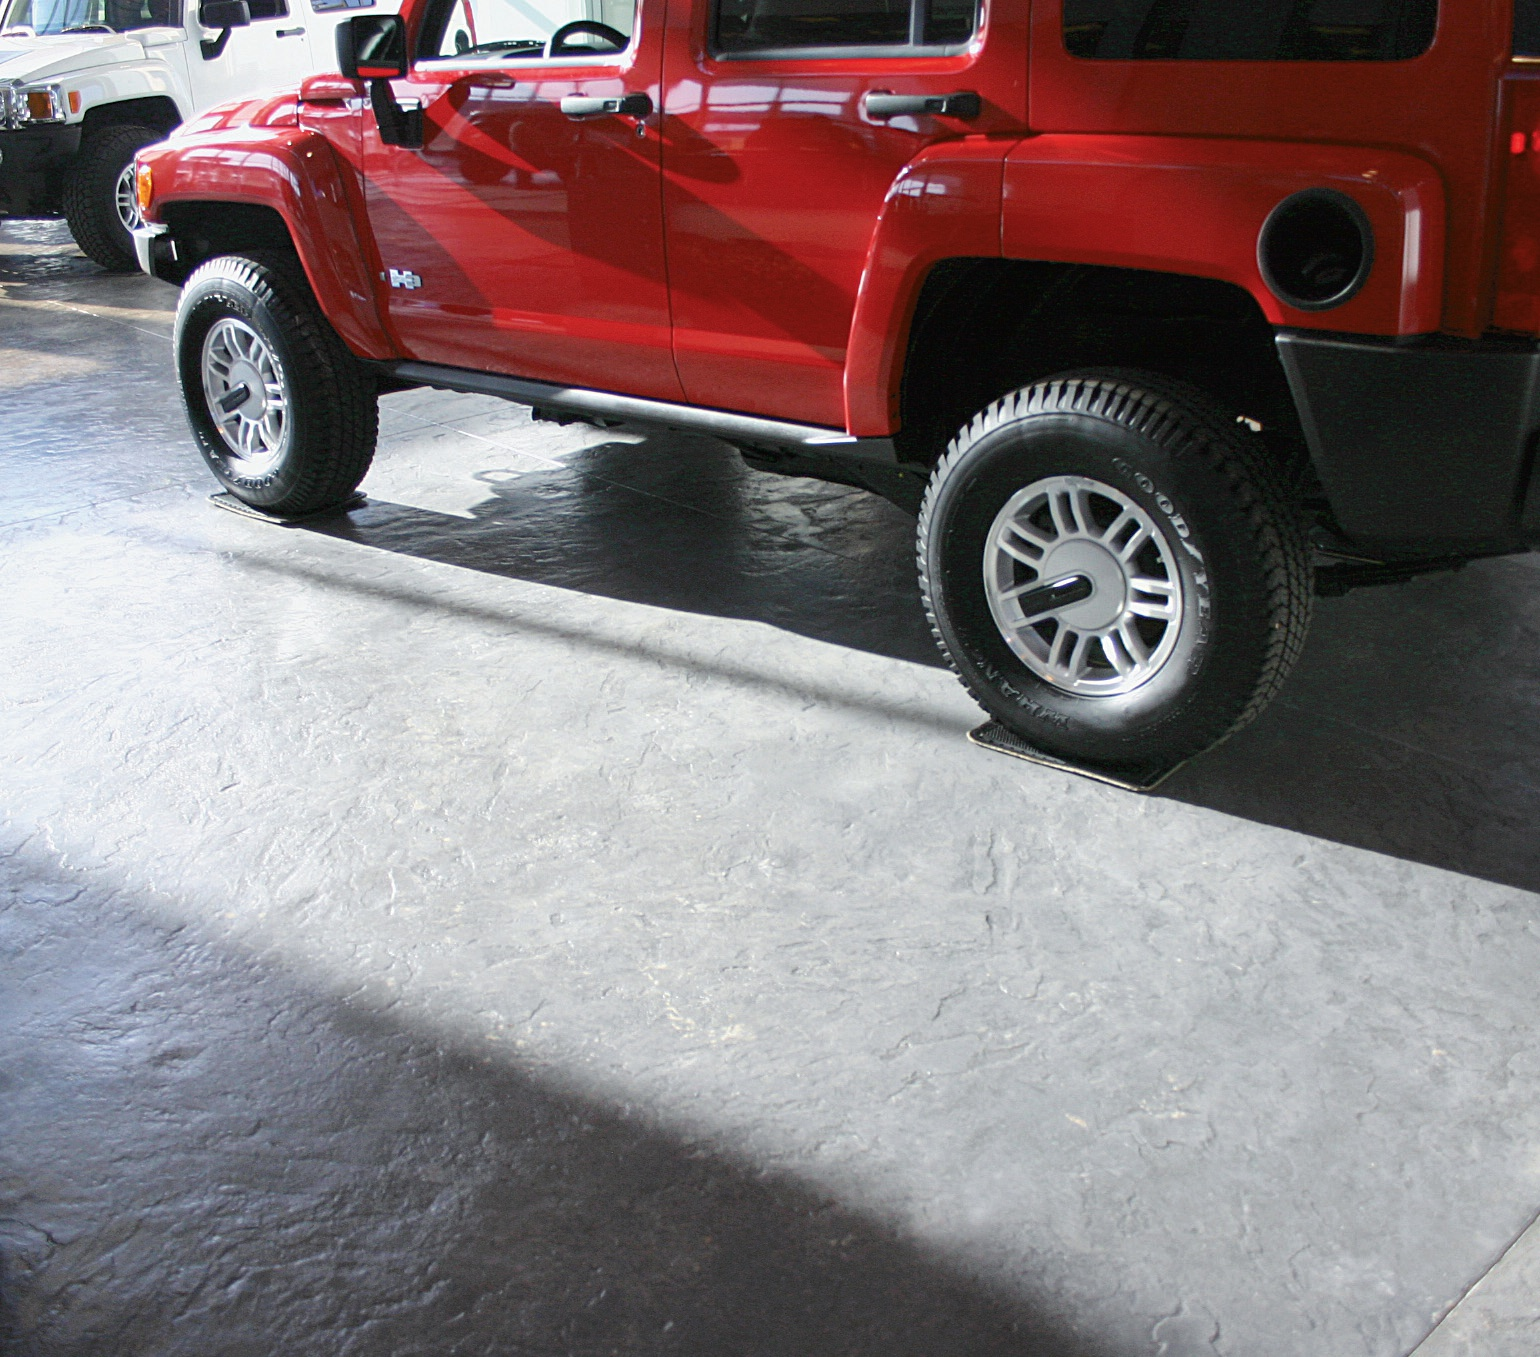 "For example, he explains, his company recently did a stamped concrete floor for a Hummer dealership. ""The owner had no idea how to take care of it, so we put together a proposal where our staff comes out once a month and inspects, deep cleans and waxes the floor. And once a year, we'll do an intense wax removal and recoating."